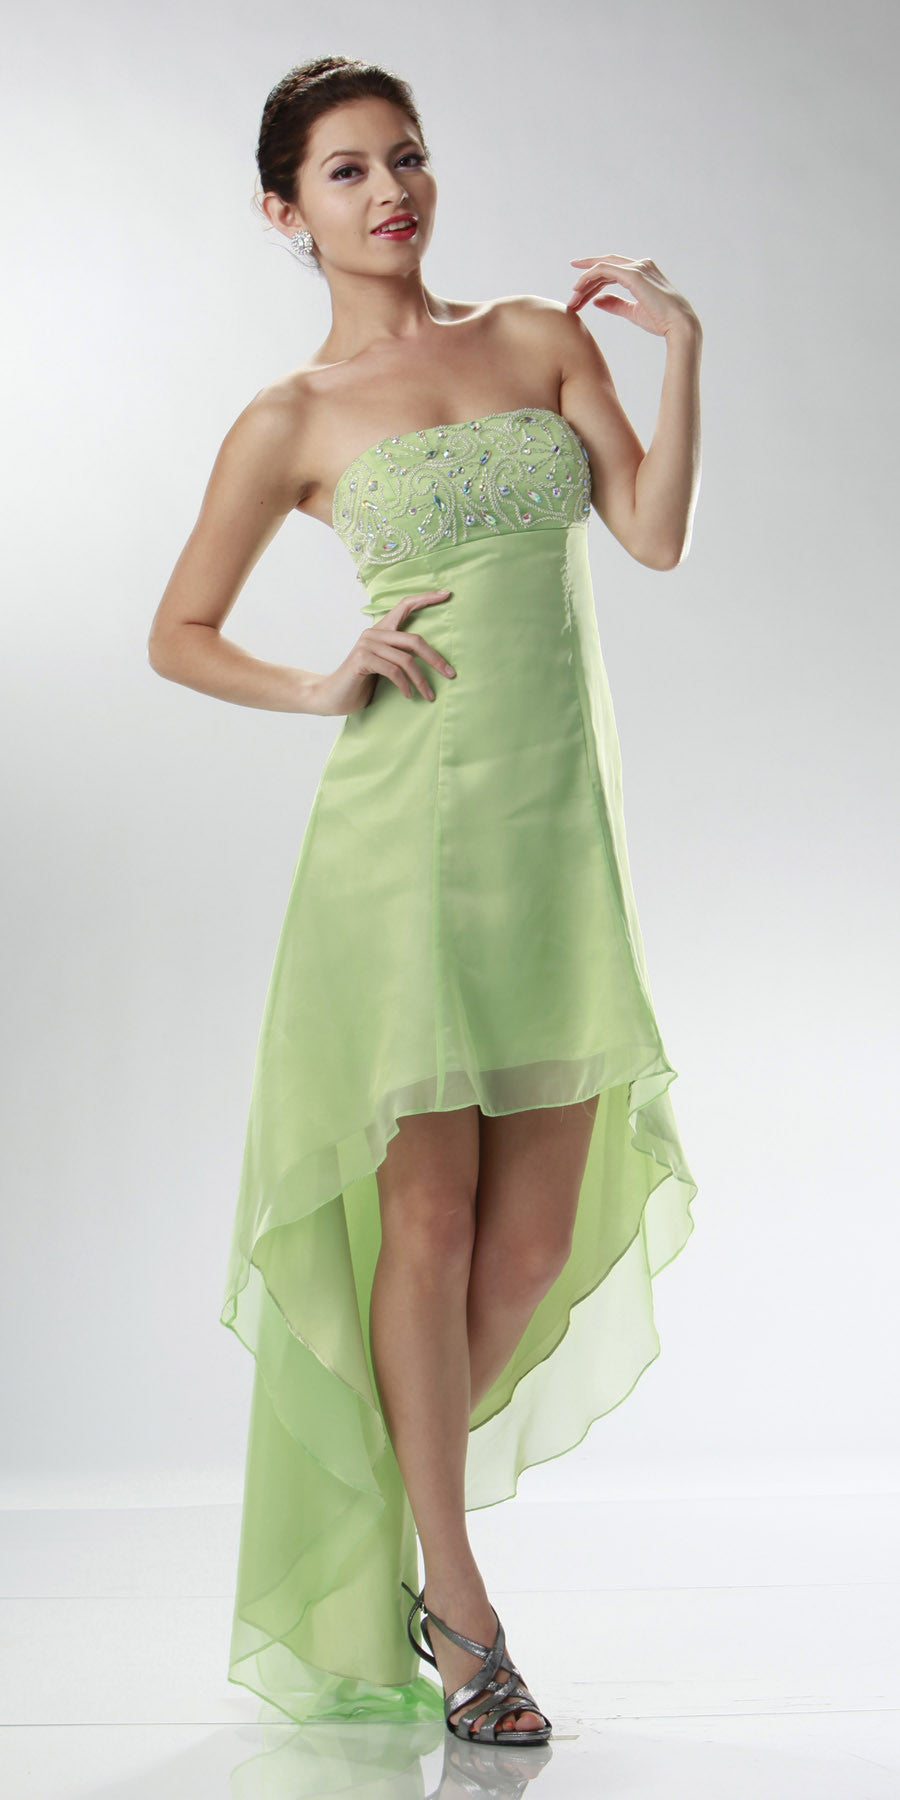 ON SPECIAL LIMITED STOCK - Mint Green High Low Homecoming Dress 2 Tone Chiffon Strapless Beaded Top